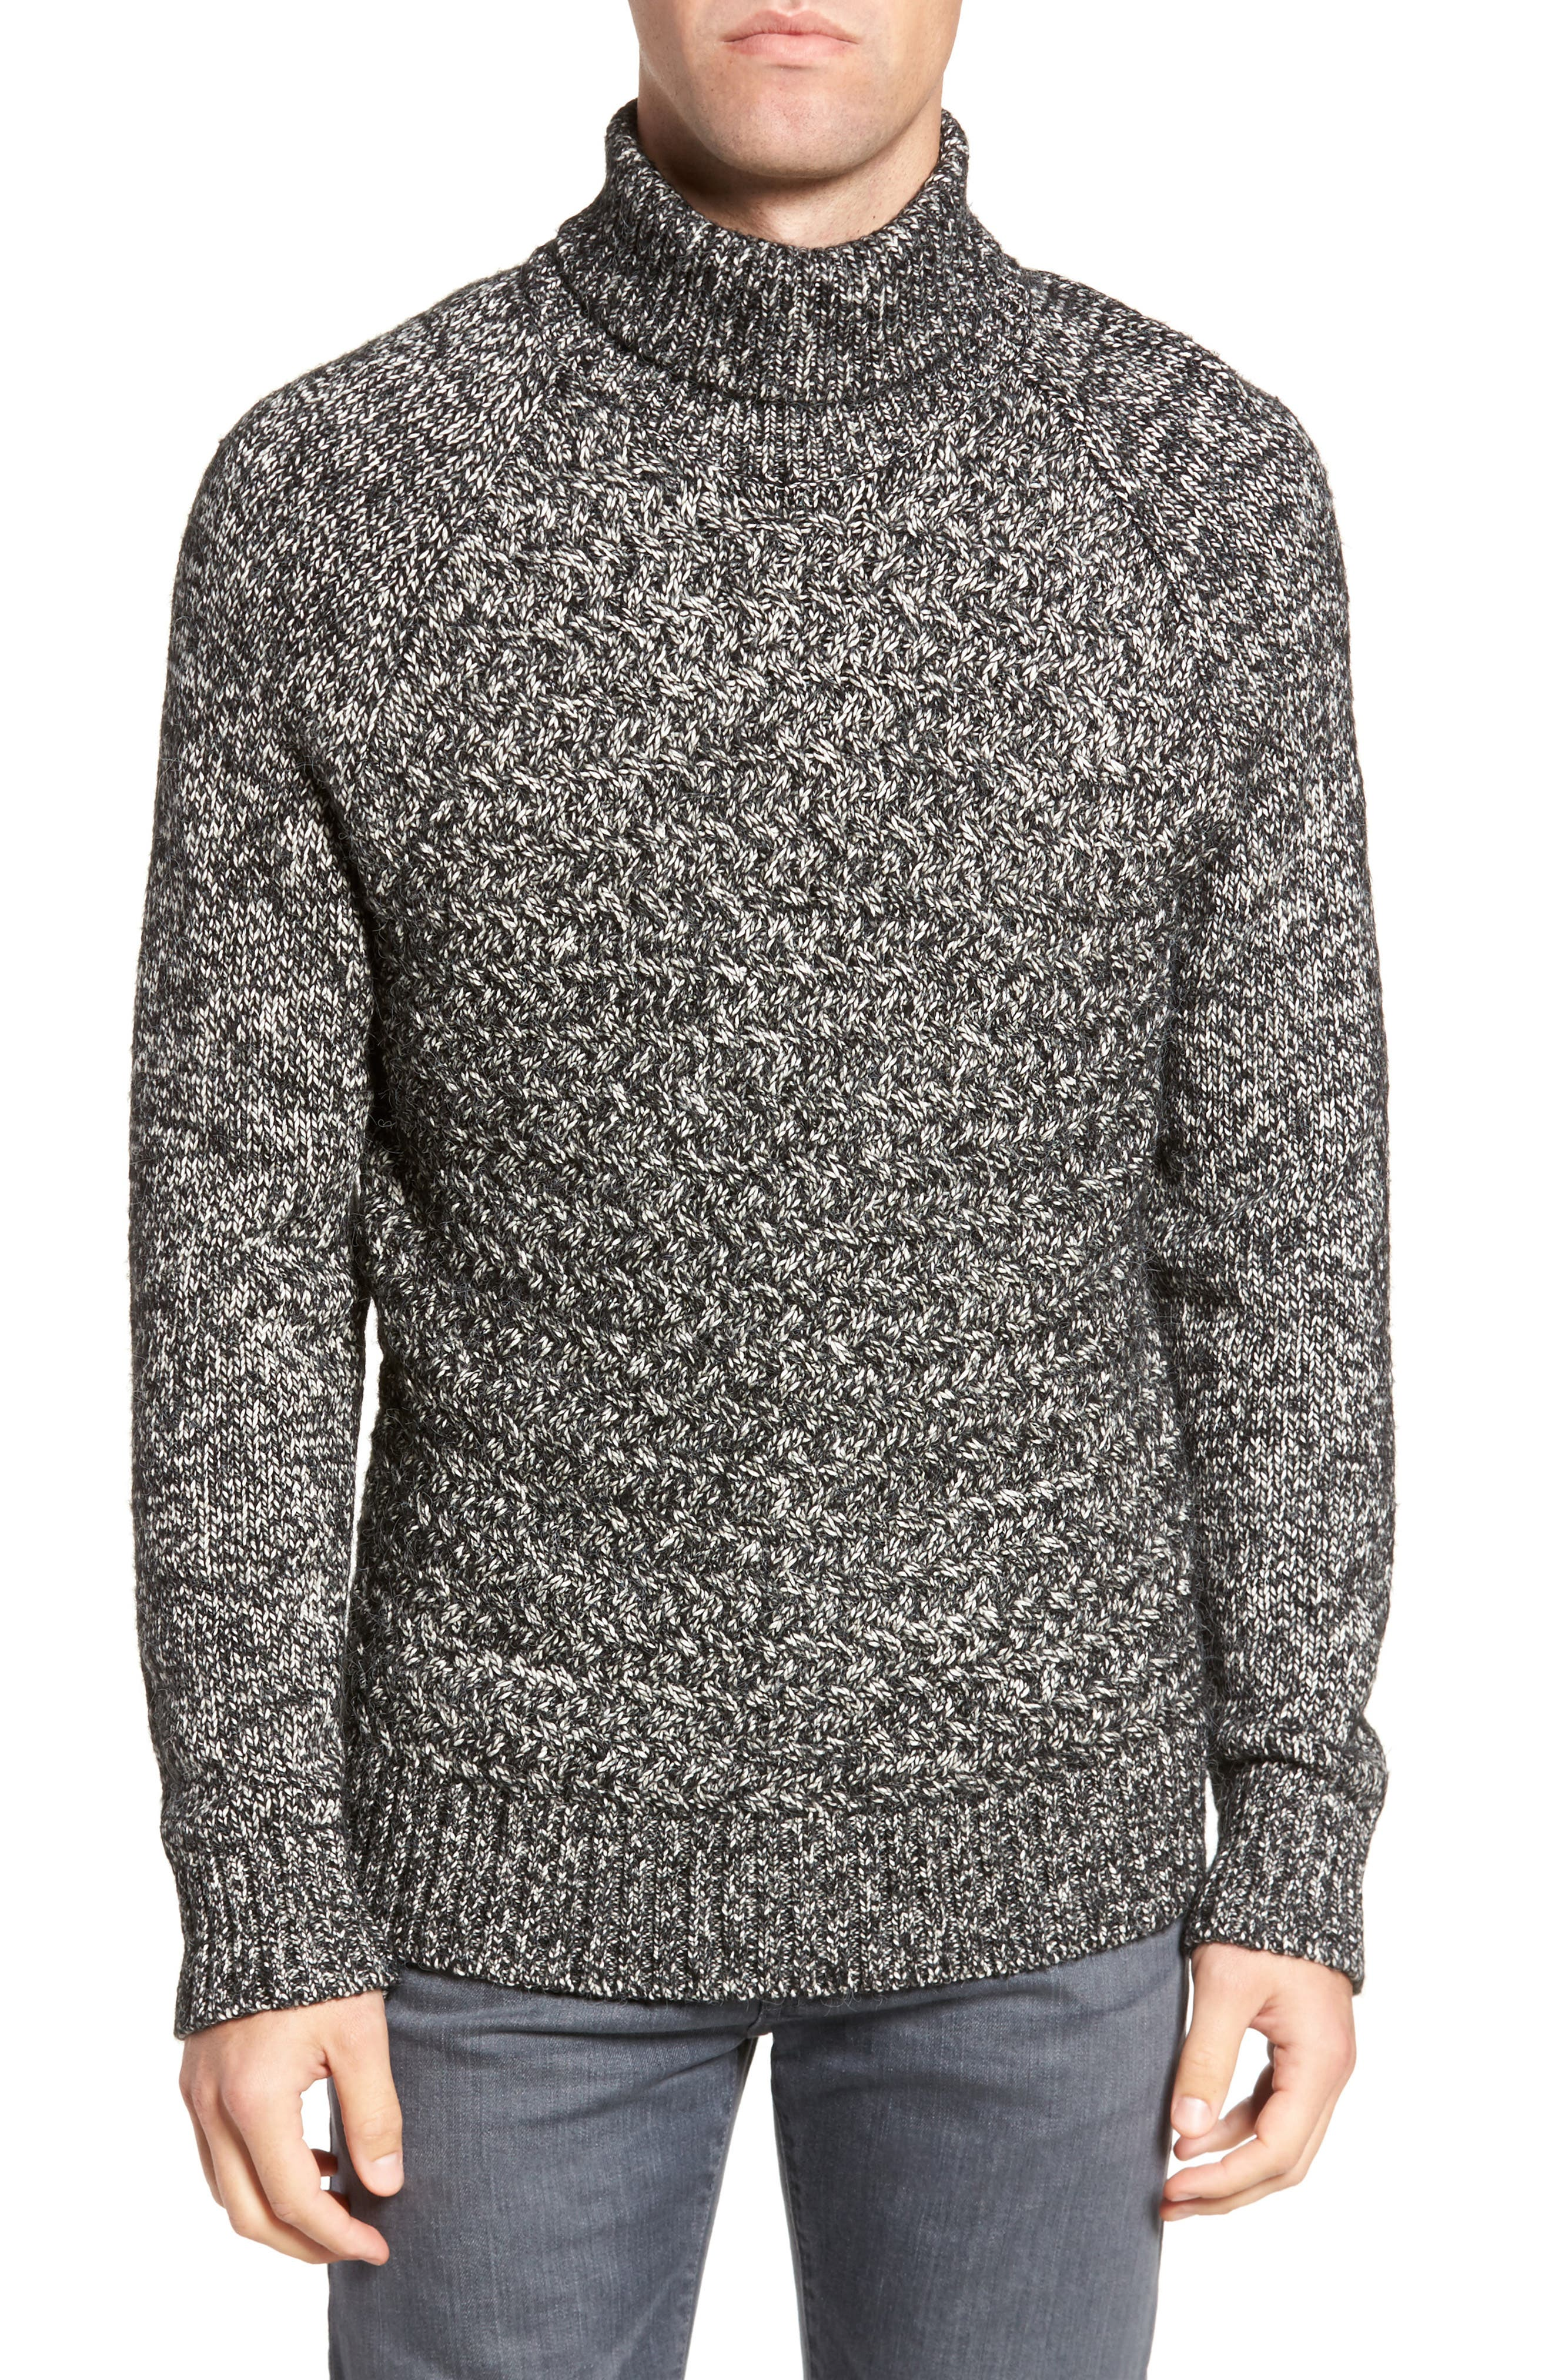 Main Image - French Connection Marled Cable Knit Turtleneck Sweater